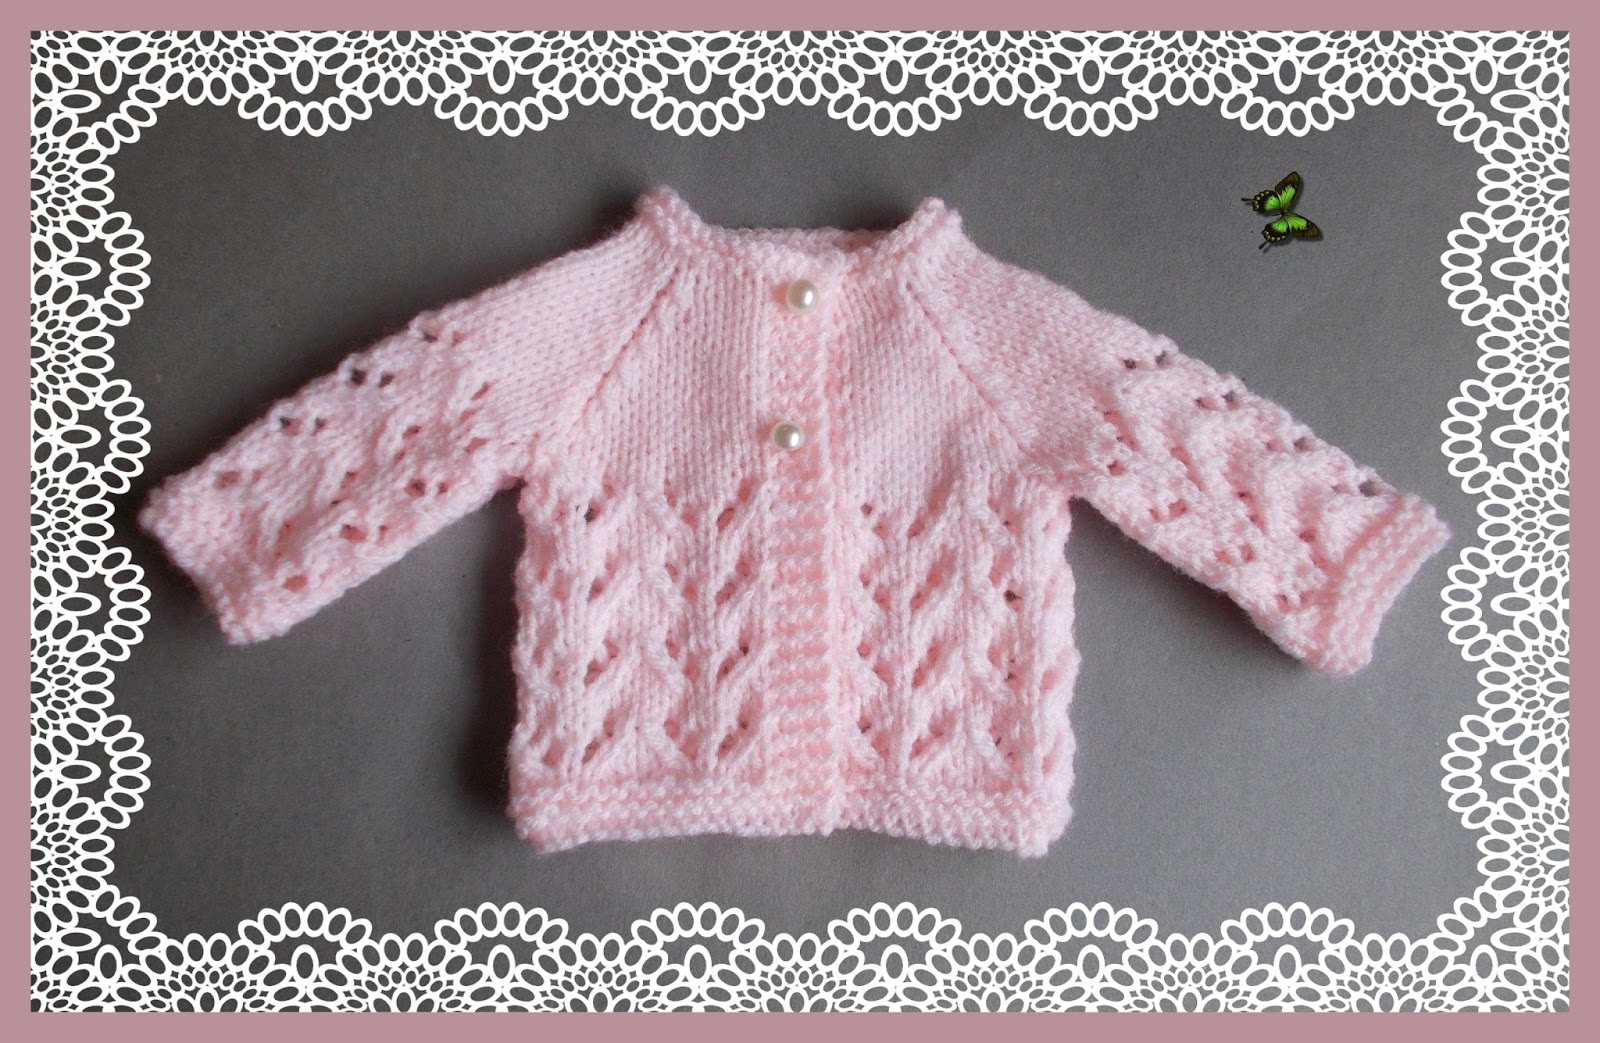 mariannas lazy daisy days: Little Bibi - Preemie Baby Jacket & Hat